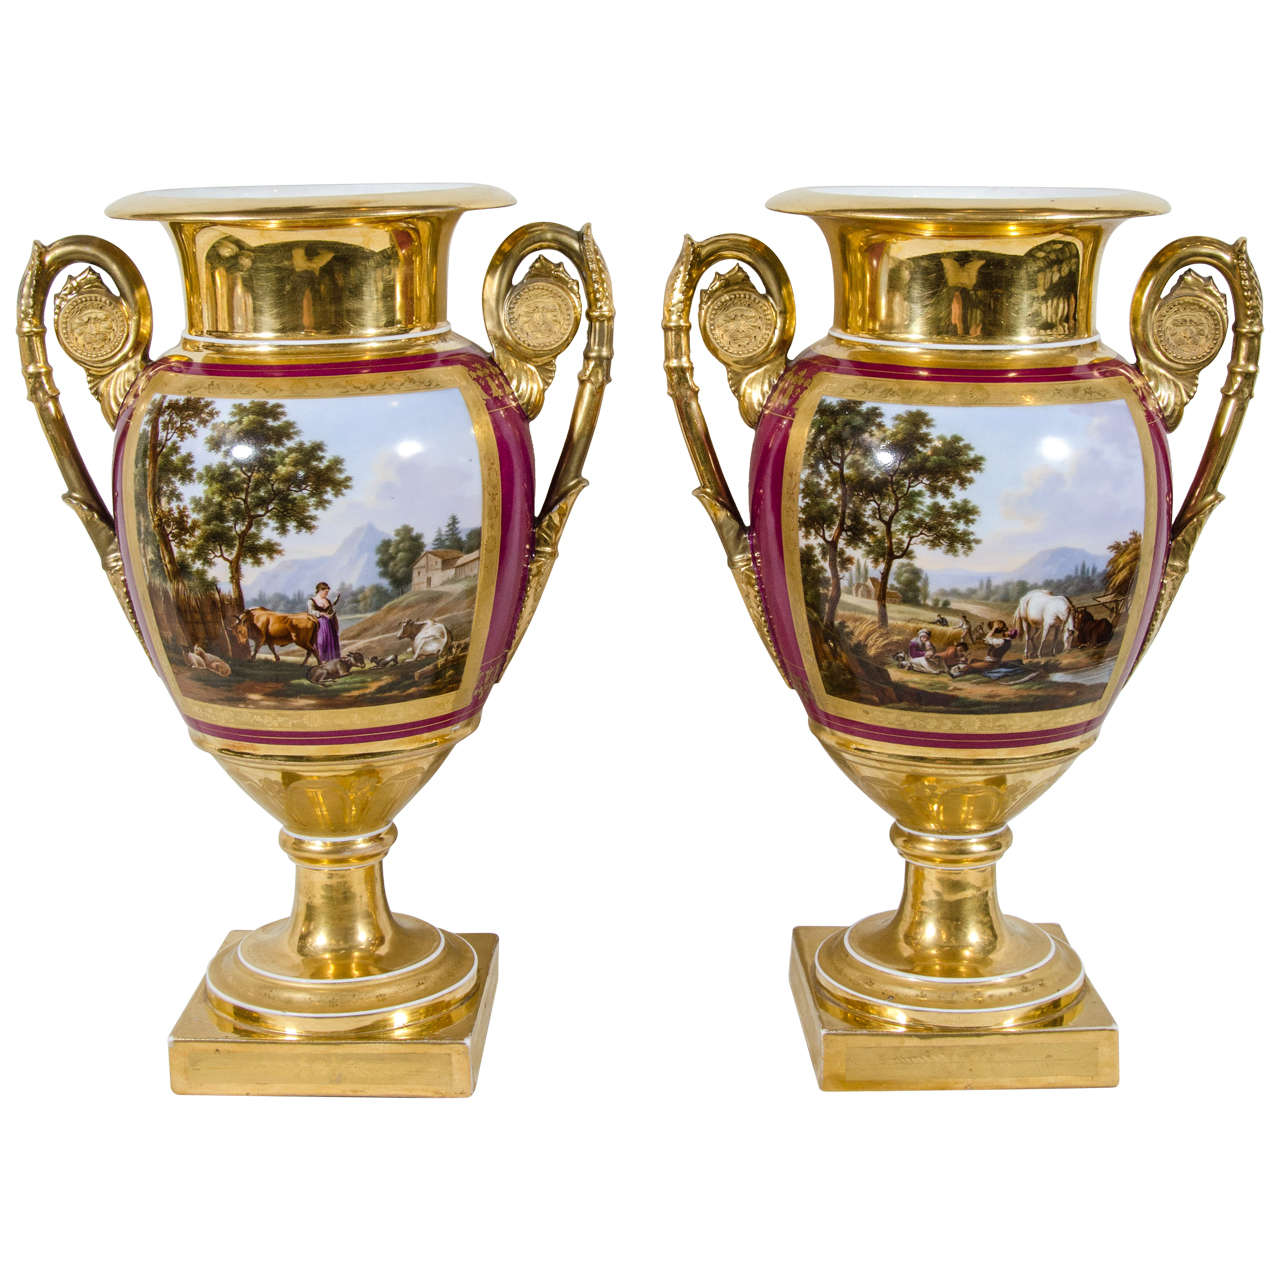 Pair antique french porcelain vases with hand painted landscape pair antique french porcelain vases with hand painted landscape scenes for sale reviewsmspy